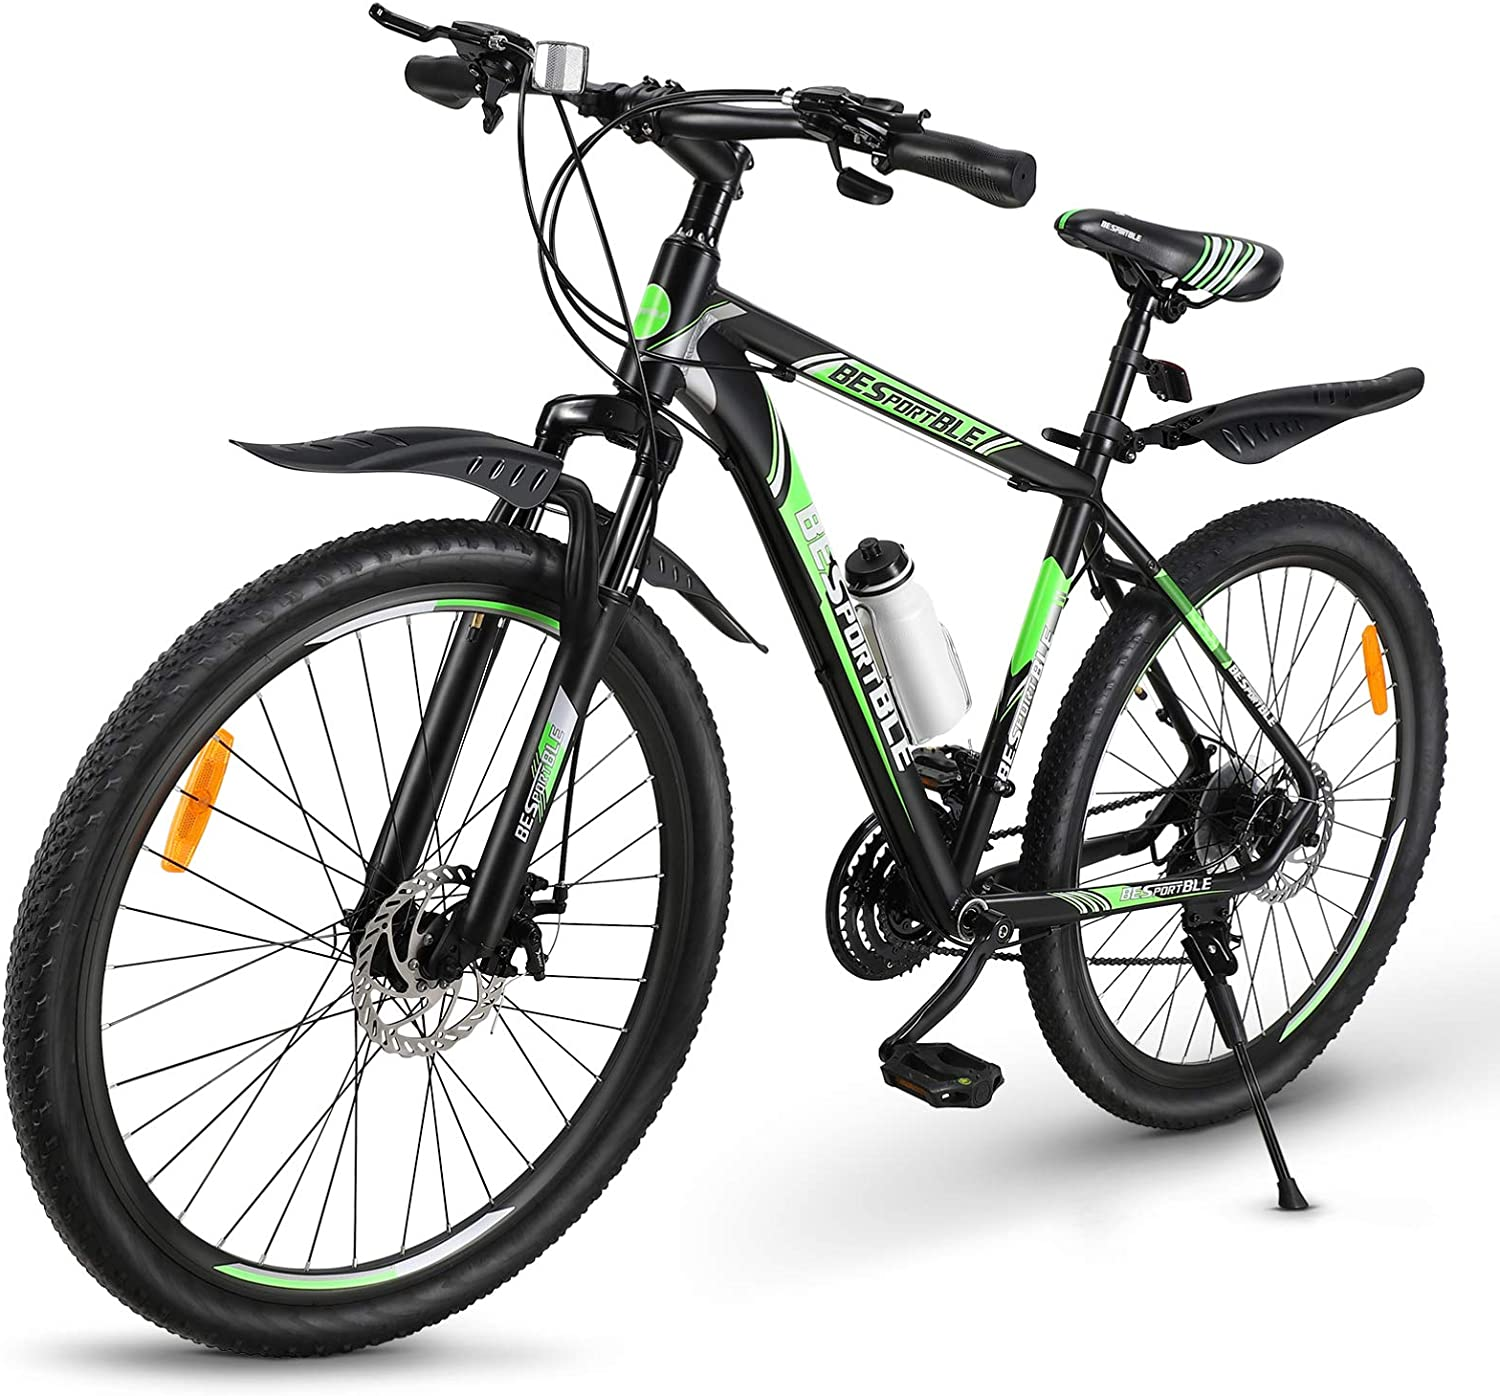 High quality BESPORTBLE Mountain Bike 21 with Max 77% OFF Bicycle Alumin Speeds